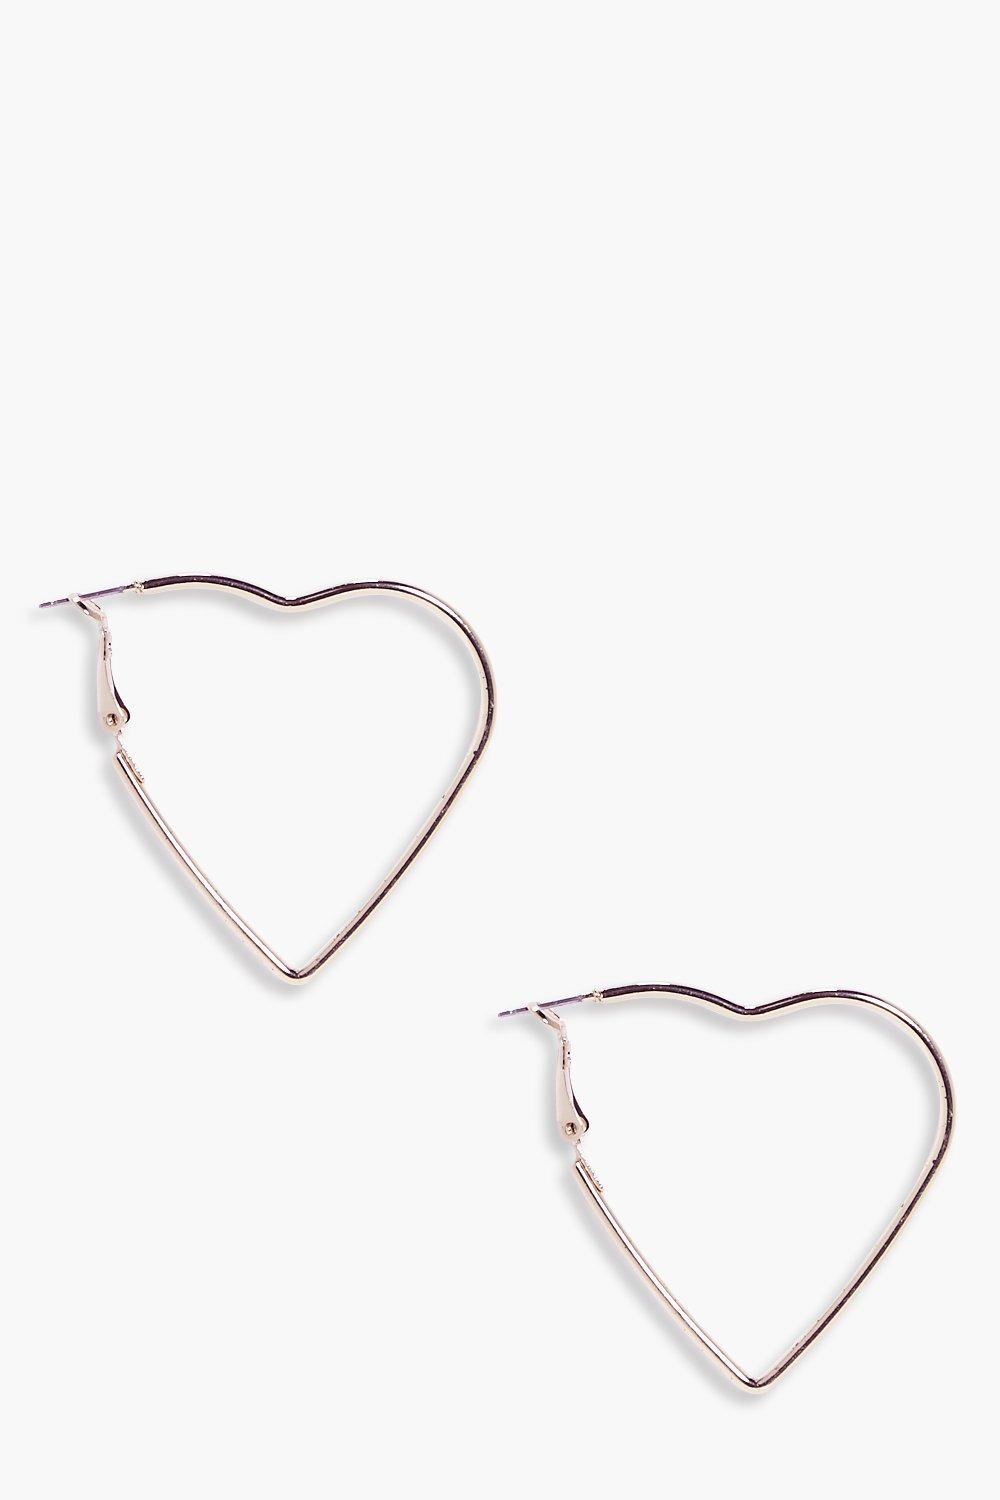 Heart Hoop Earrings  rose gold